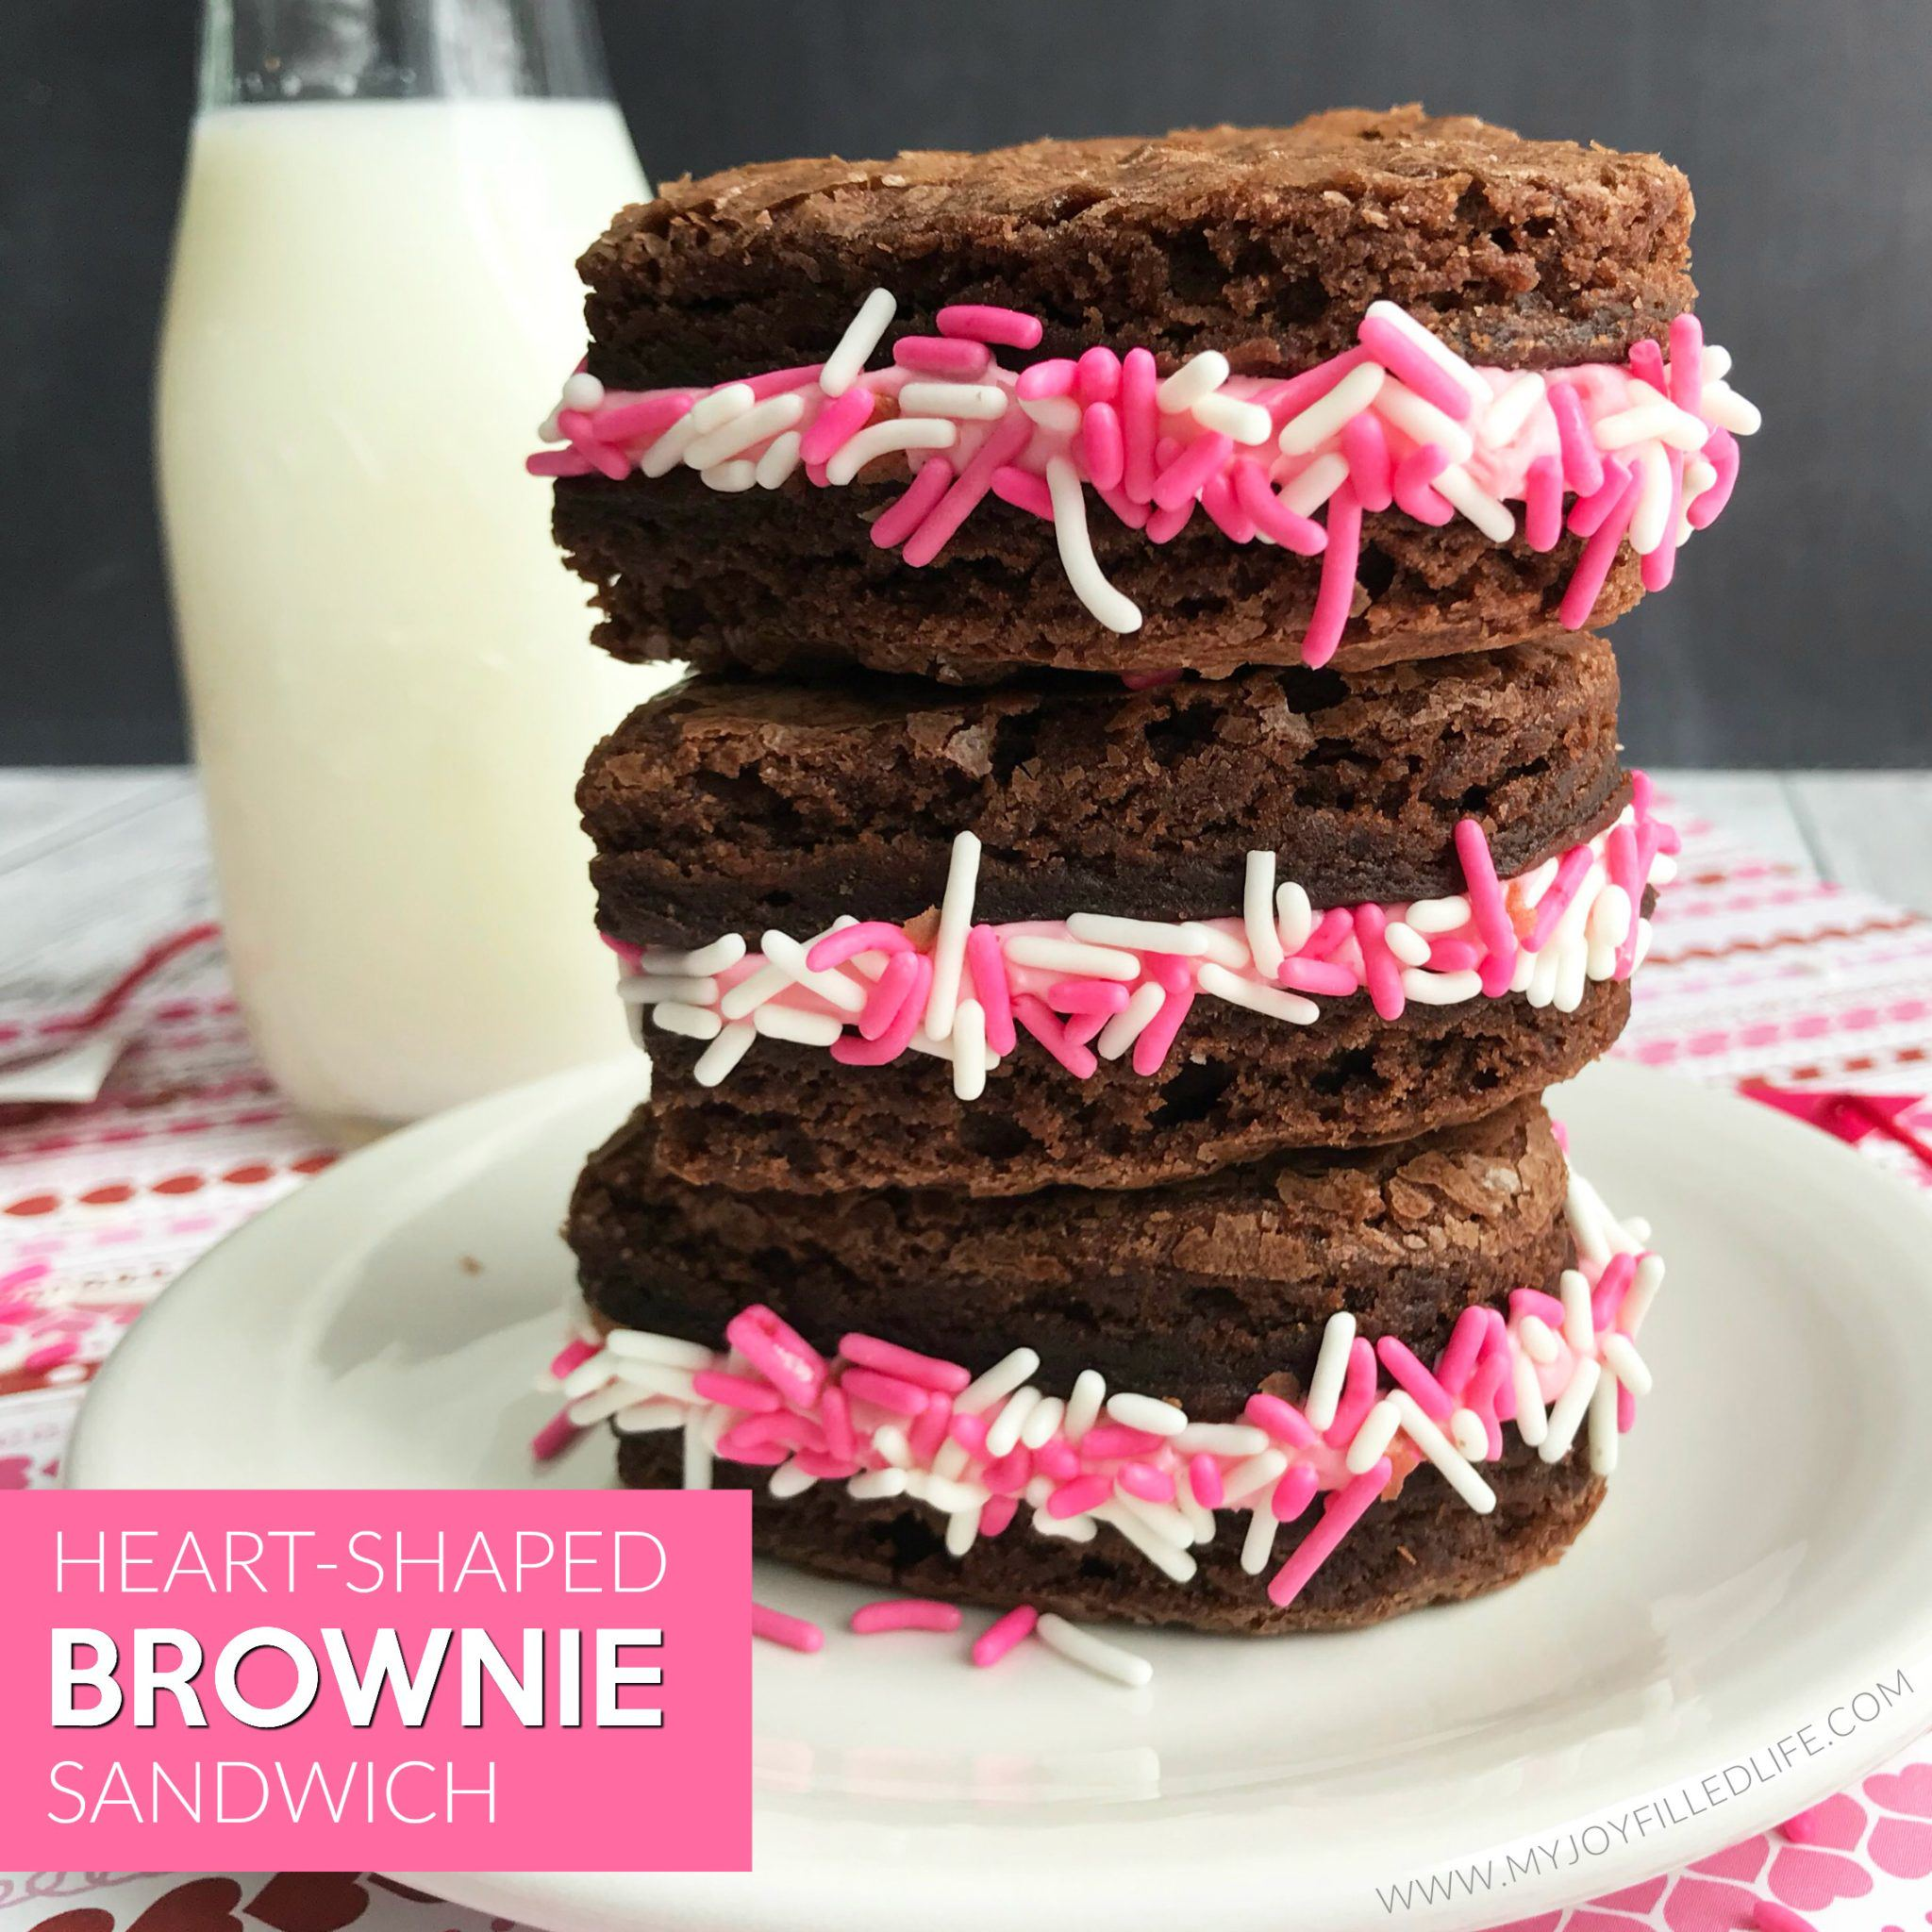 https://www.myjoyfilledlife.com/heart-shaped-brownie-sandwiches/